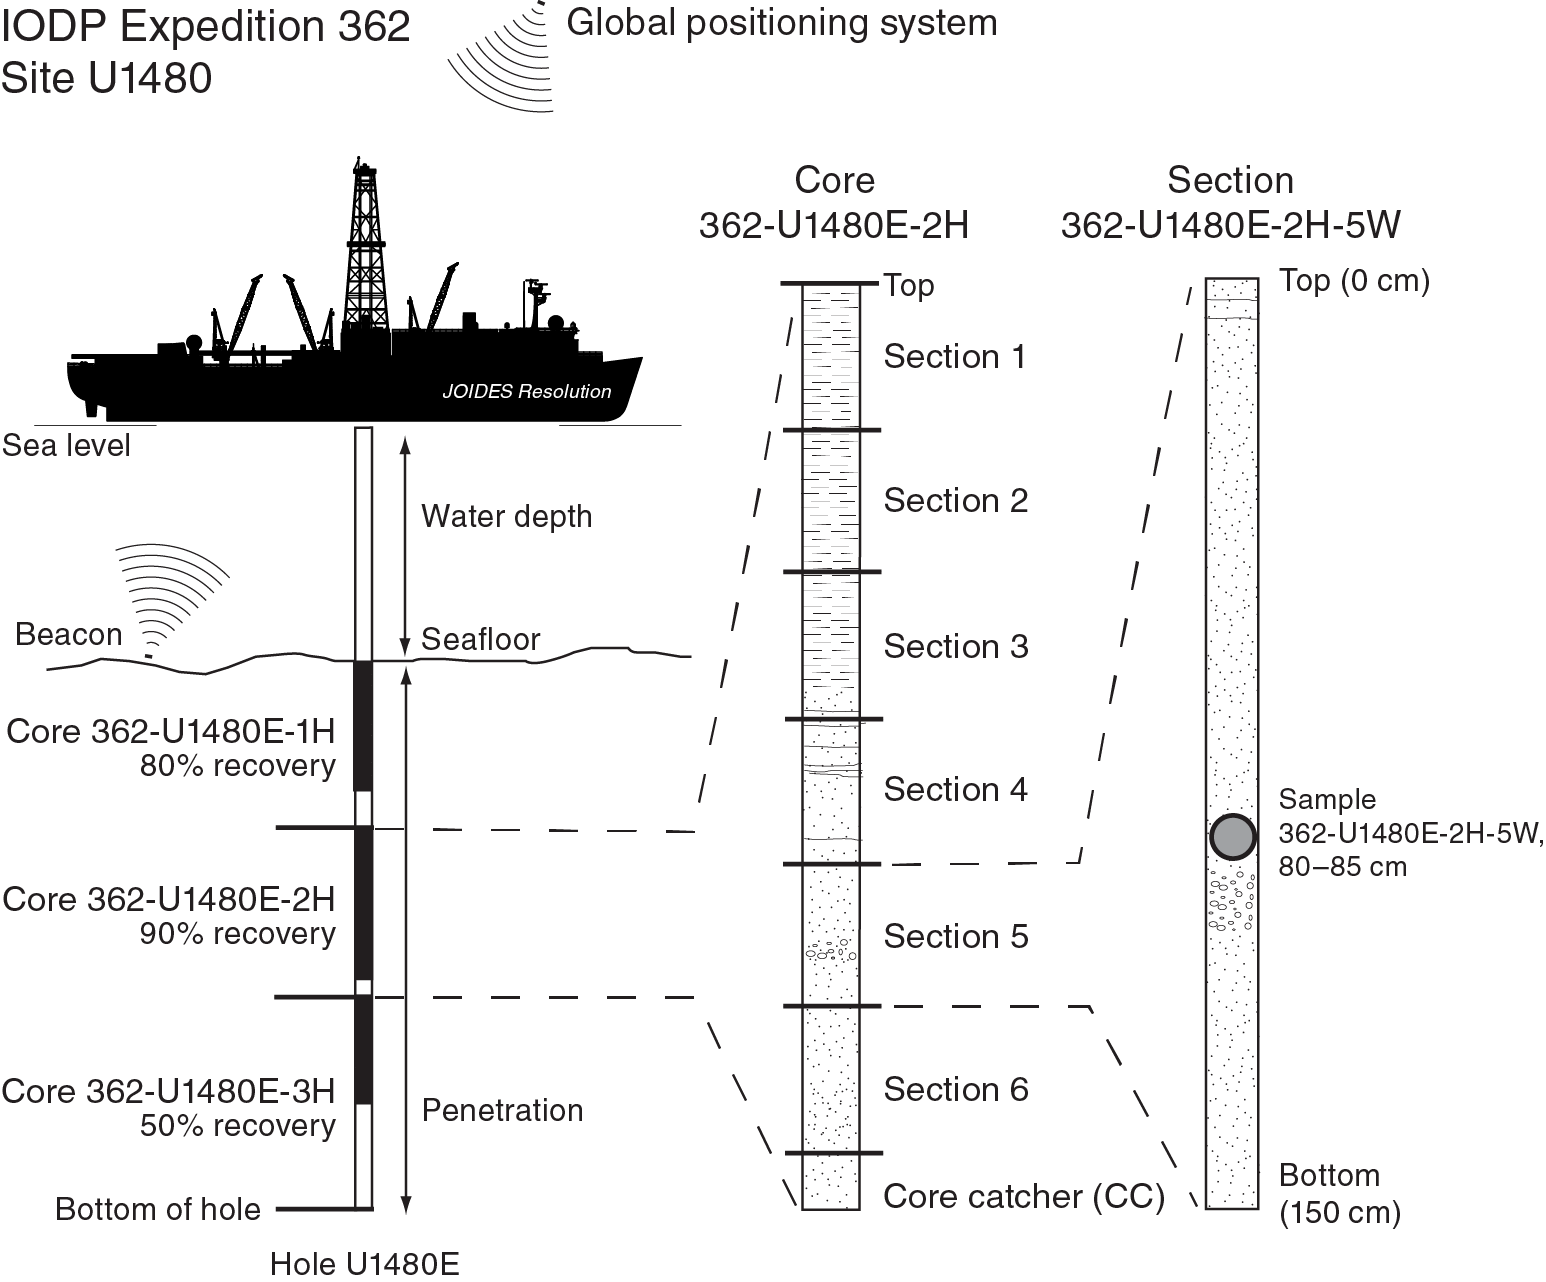 IODP Publications • Volume 362 expedition reports • Expedition 362